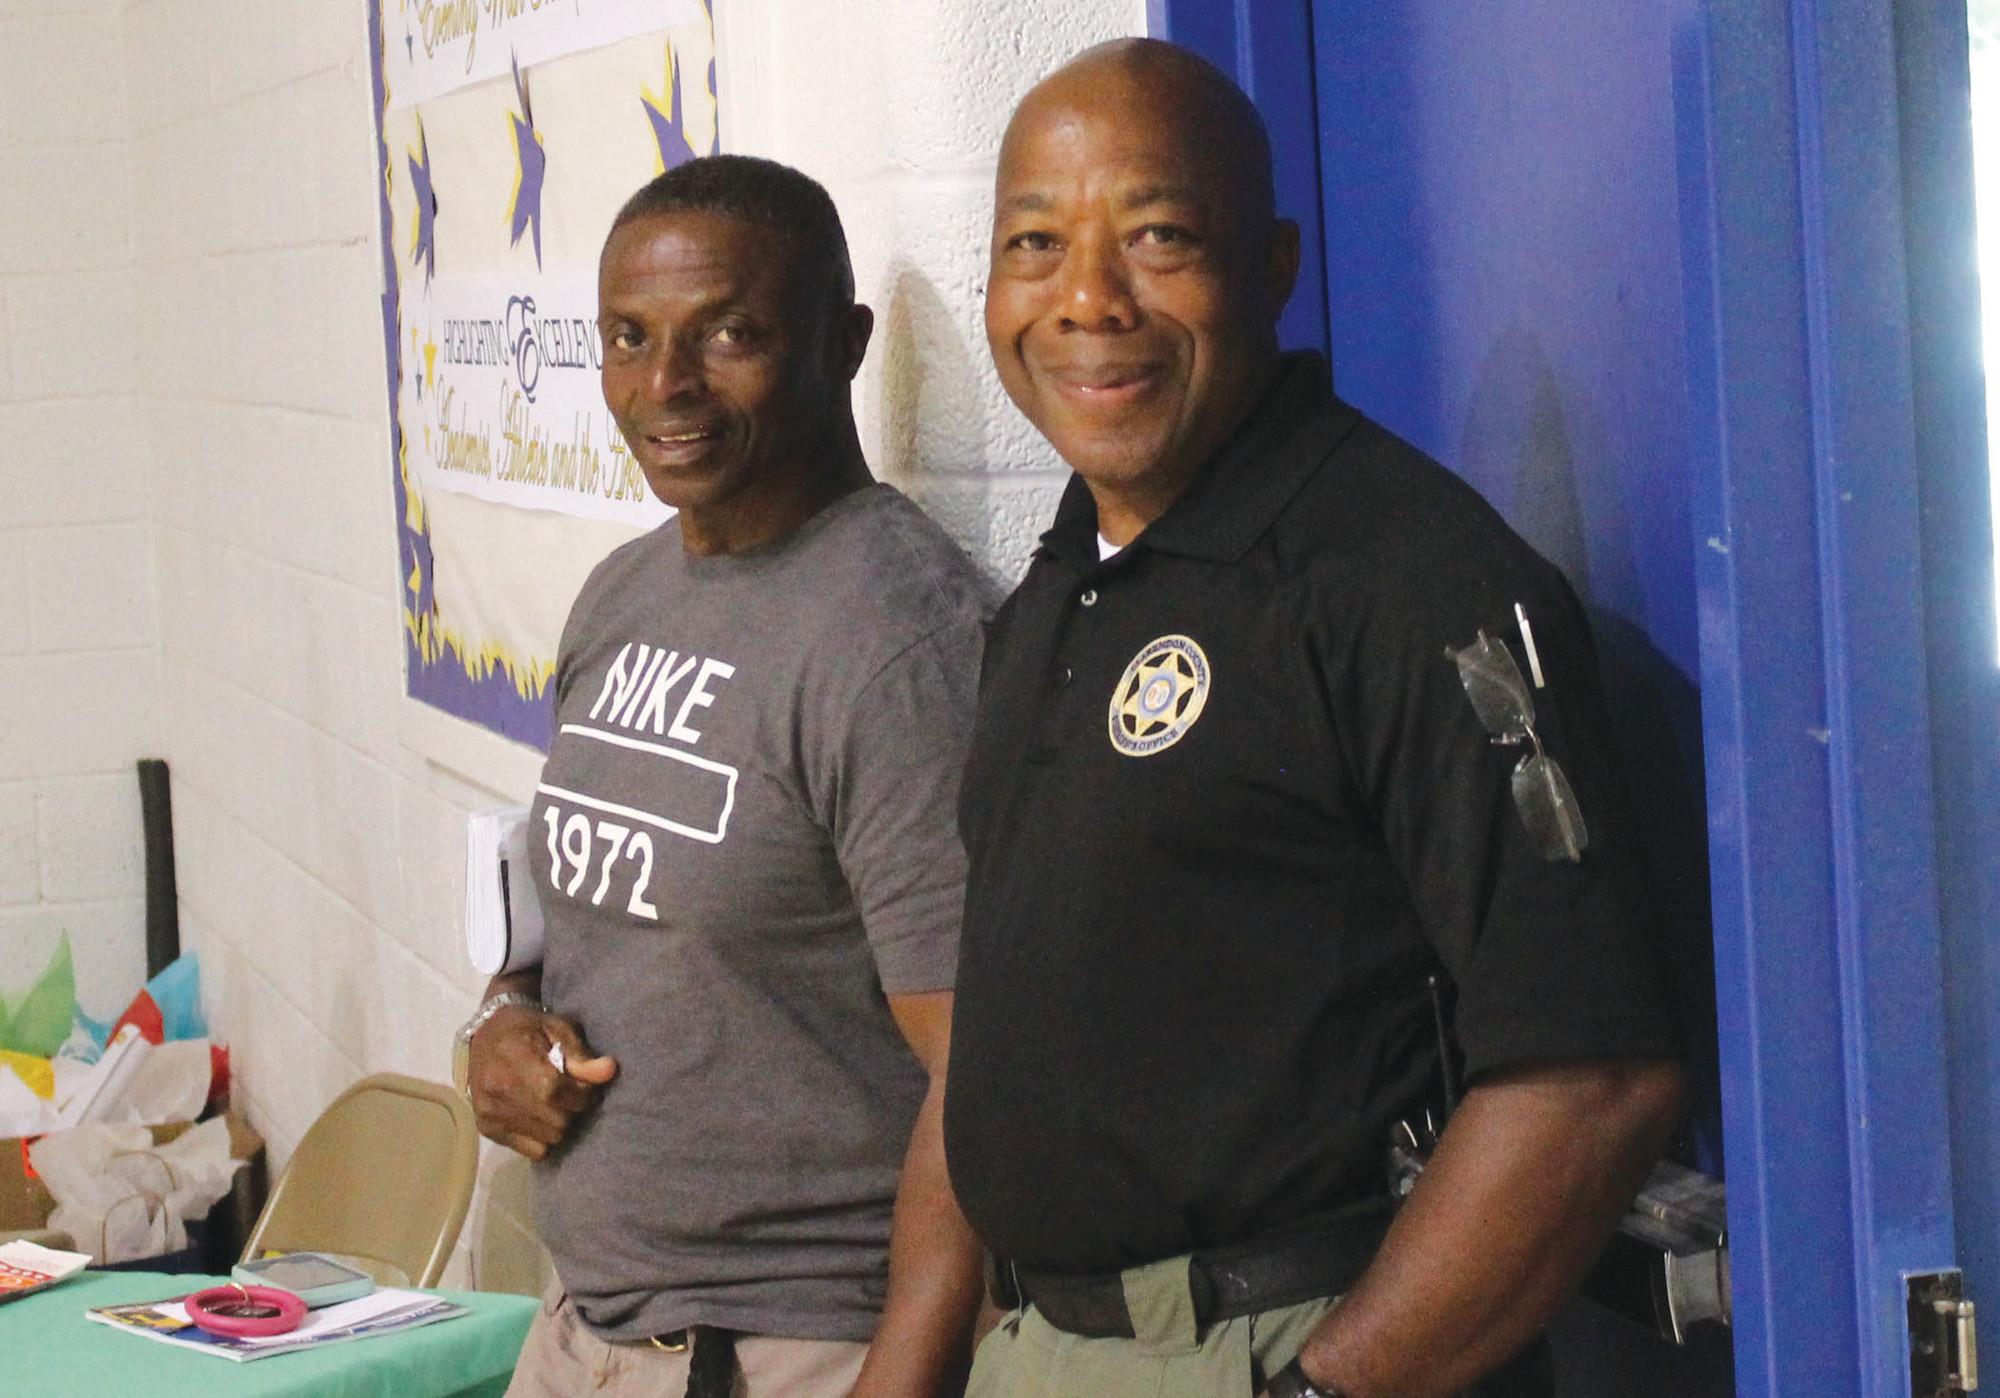 Investigator Kenneth Clark with the Clarendon County Sheriff's Office offered moral support to his fellow law enforcement officers when they took the court against a few stellar athletes from Scott's Branch High School.